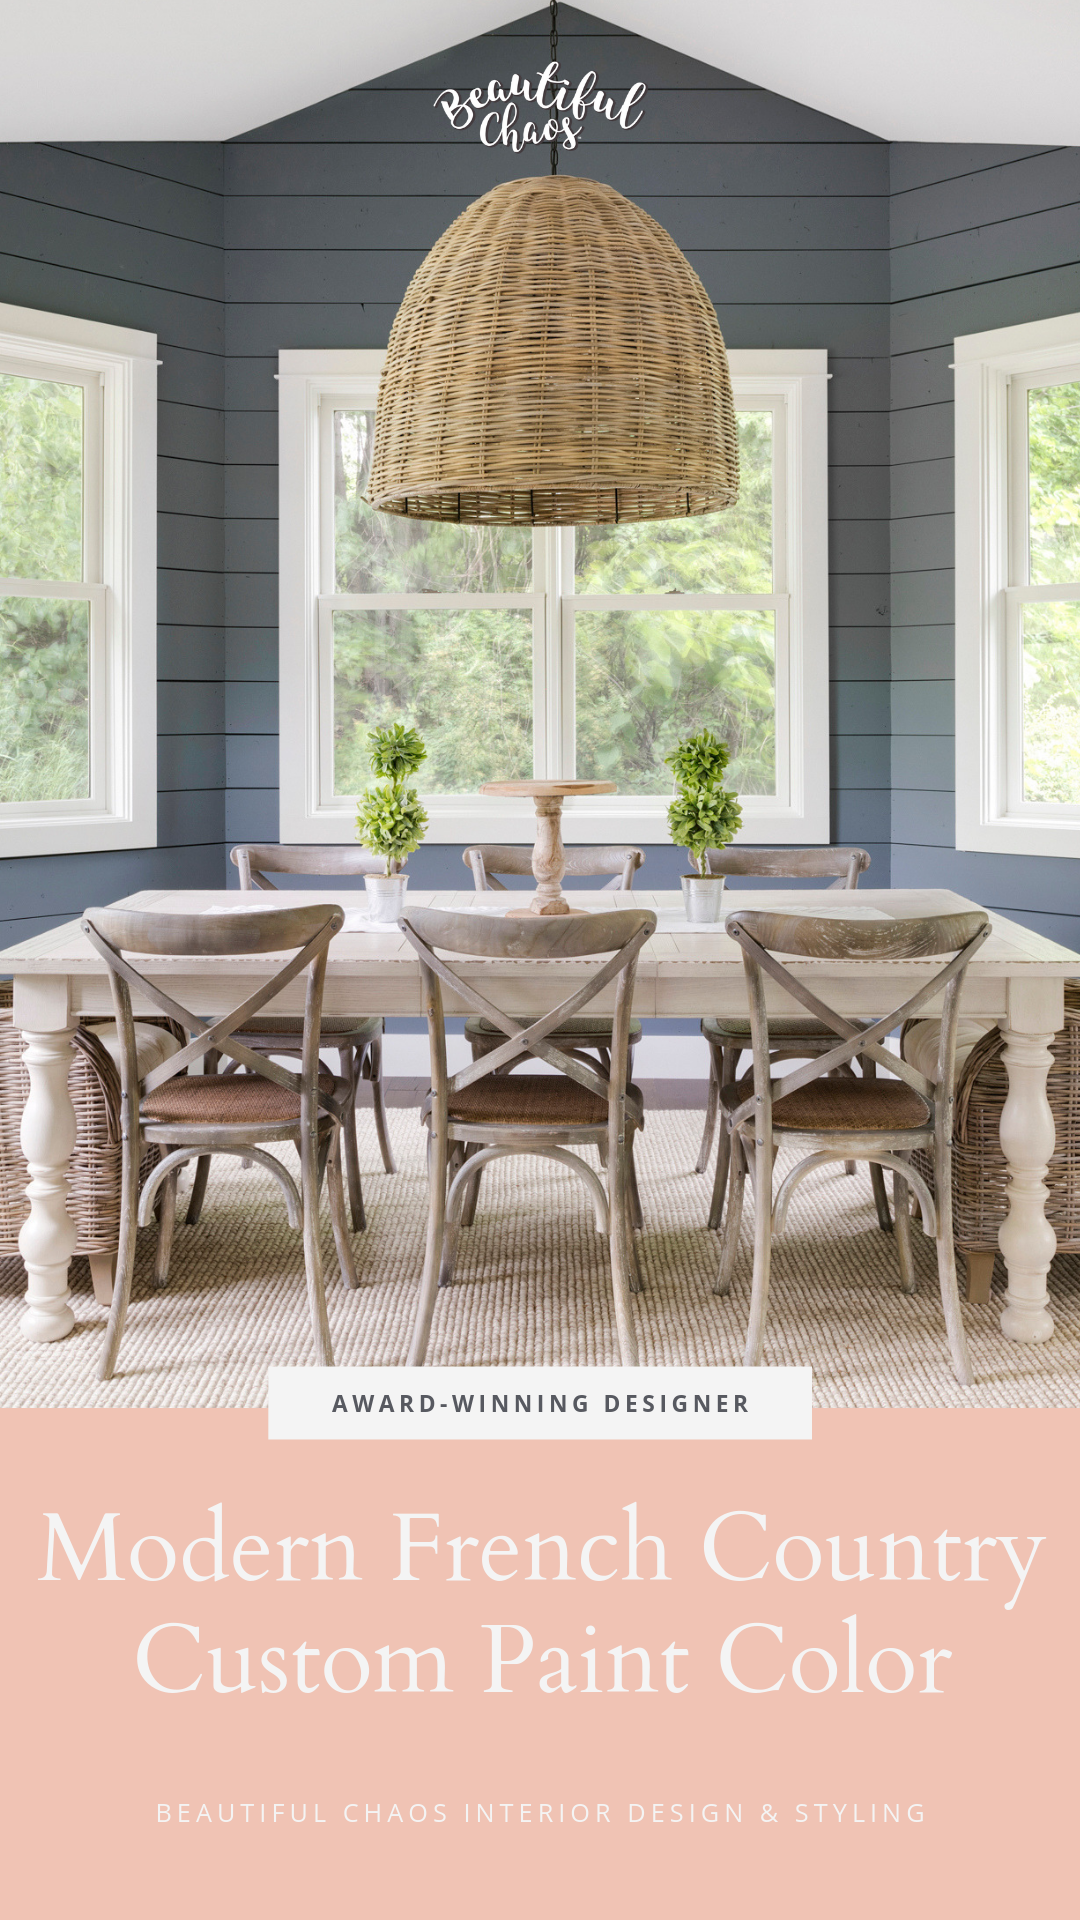 31+ Farmhouse dining room colors ideas in 2021